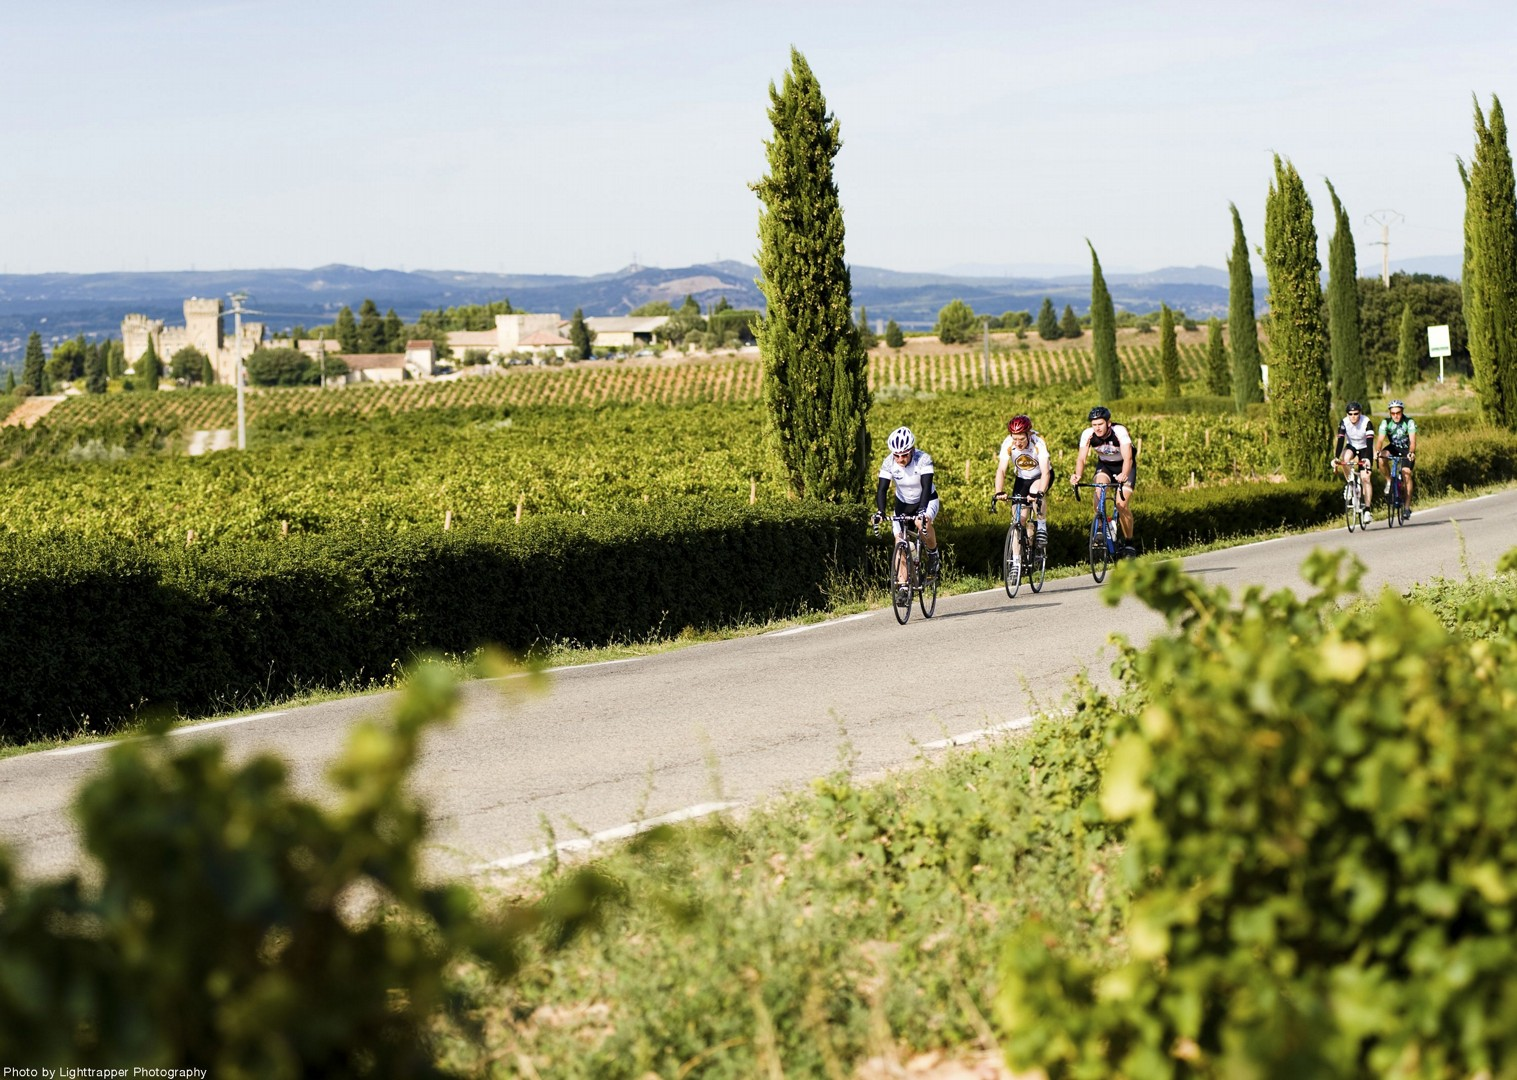 vineyards-of-france-guided-road-cycling-holiday.jpg - France - Alsace, Burgundy and Beaujolais - Guided Road Cycling Holiday - Road Cycling